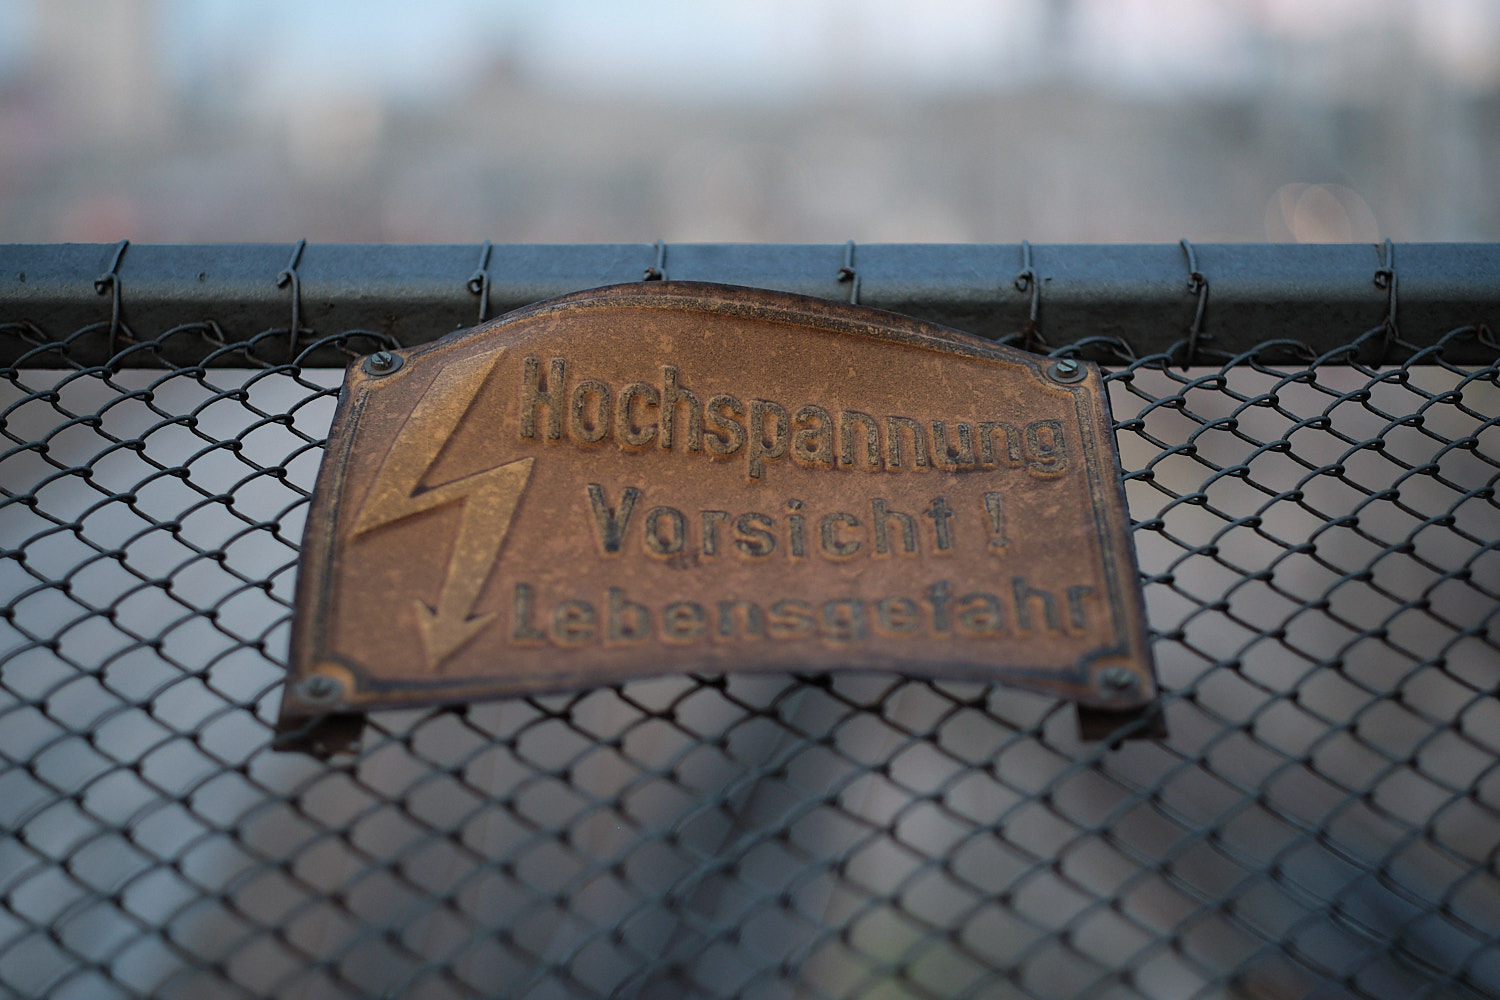 A signpost warning of the high tension train lines under the Hackerbrücke bridge